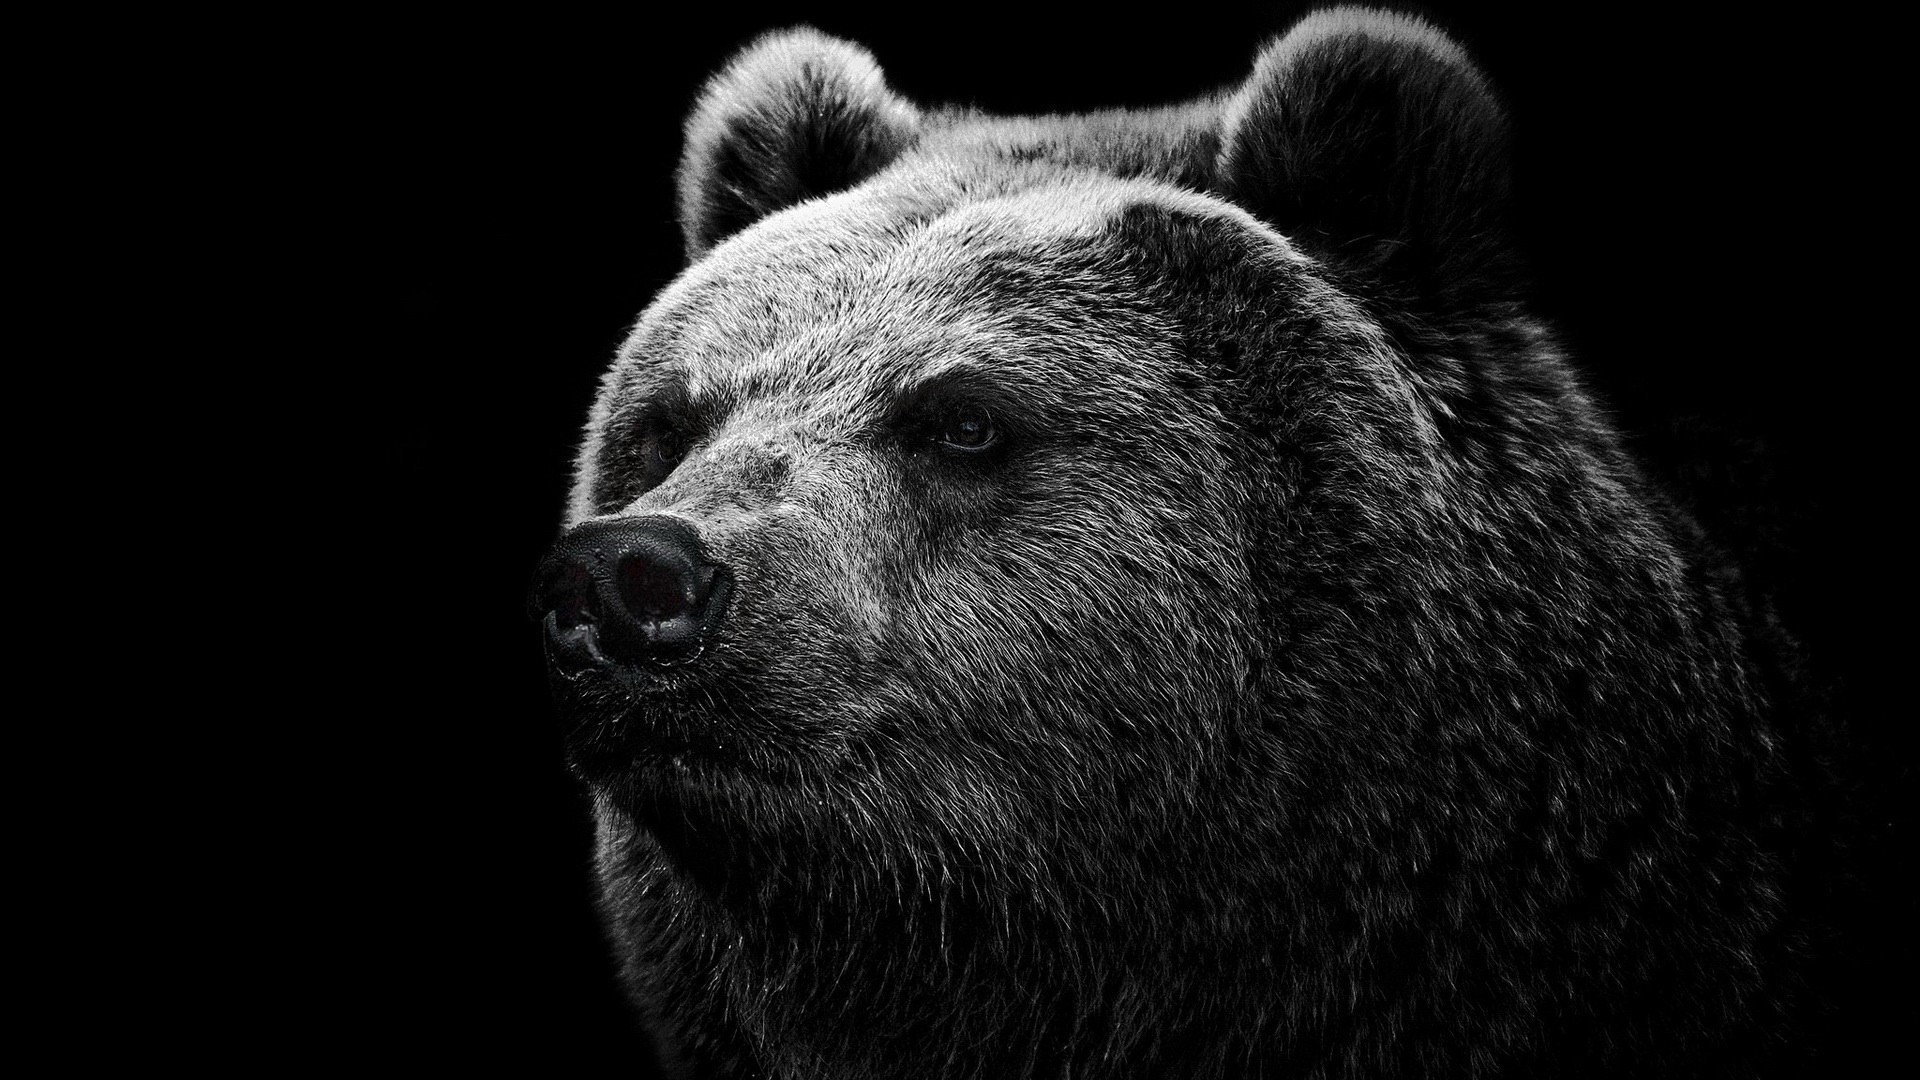 1920x1080 Cute Bear Face Black Black White Download Hd Wallpaper Image Wallpaper